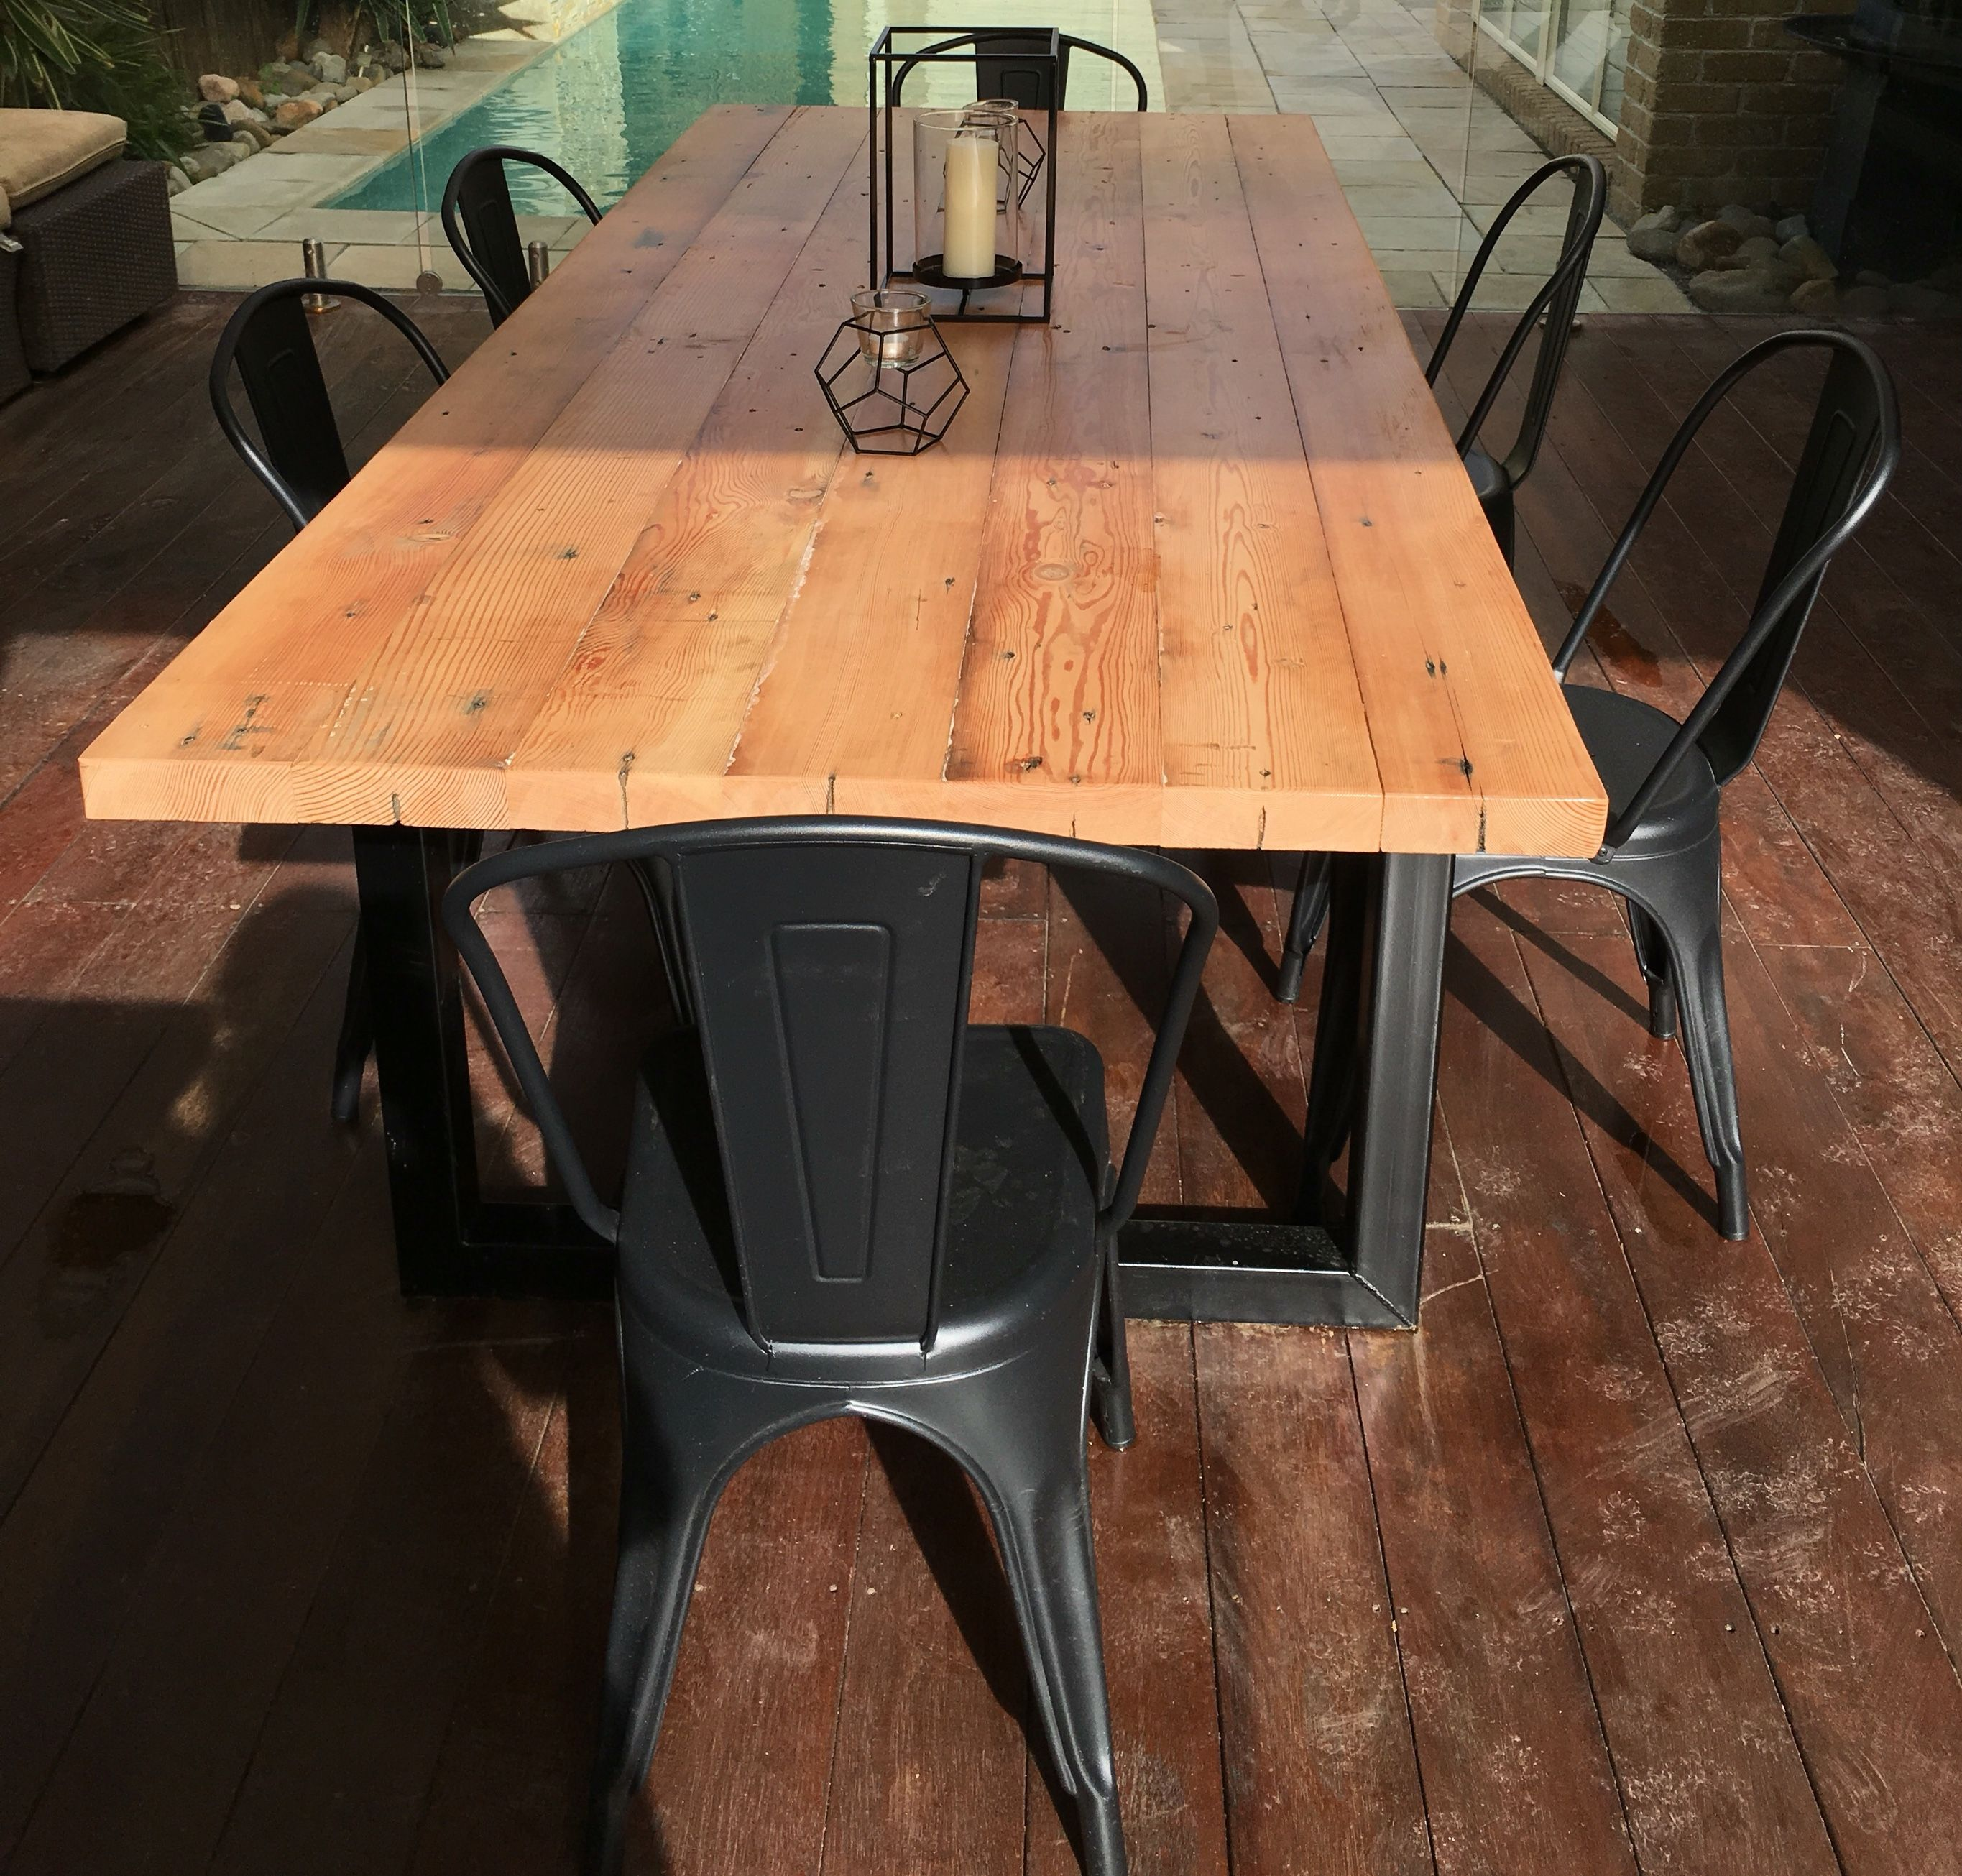 Recycled Oregon industrial dining table made by